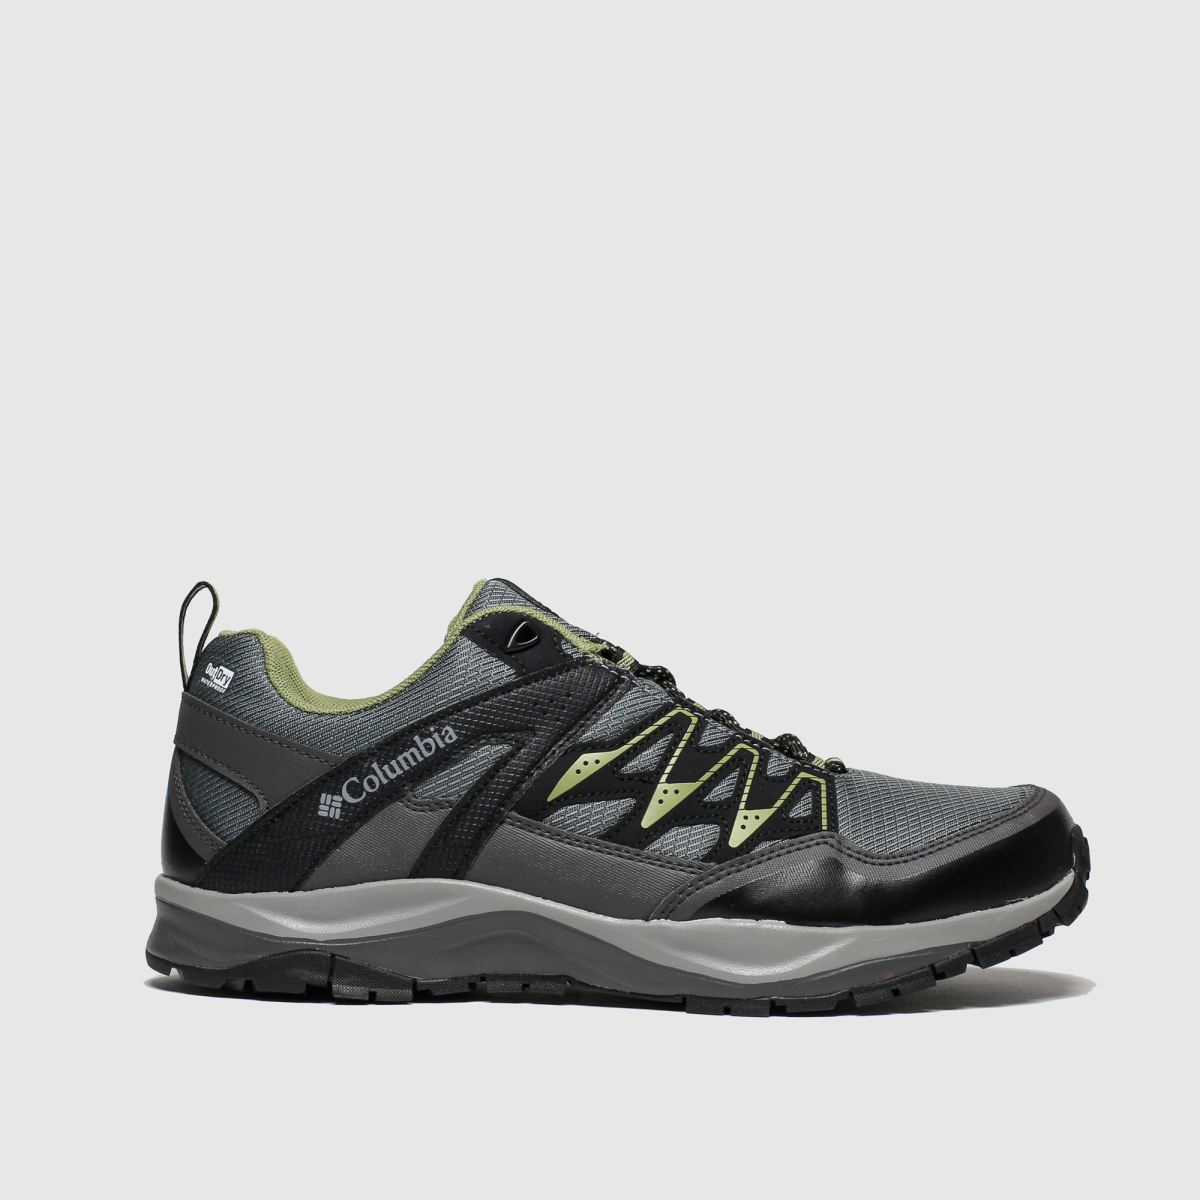 Columbia Columbia Grey & Lime Wayfinder Outdry Trainers